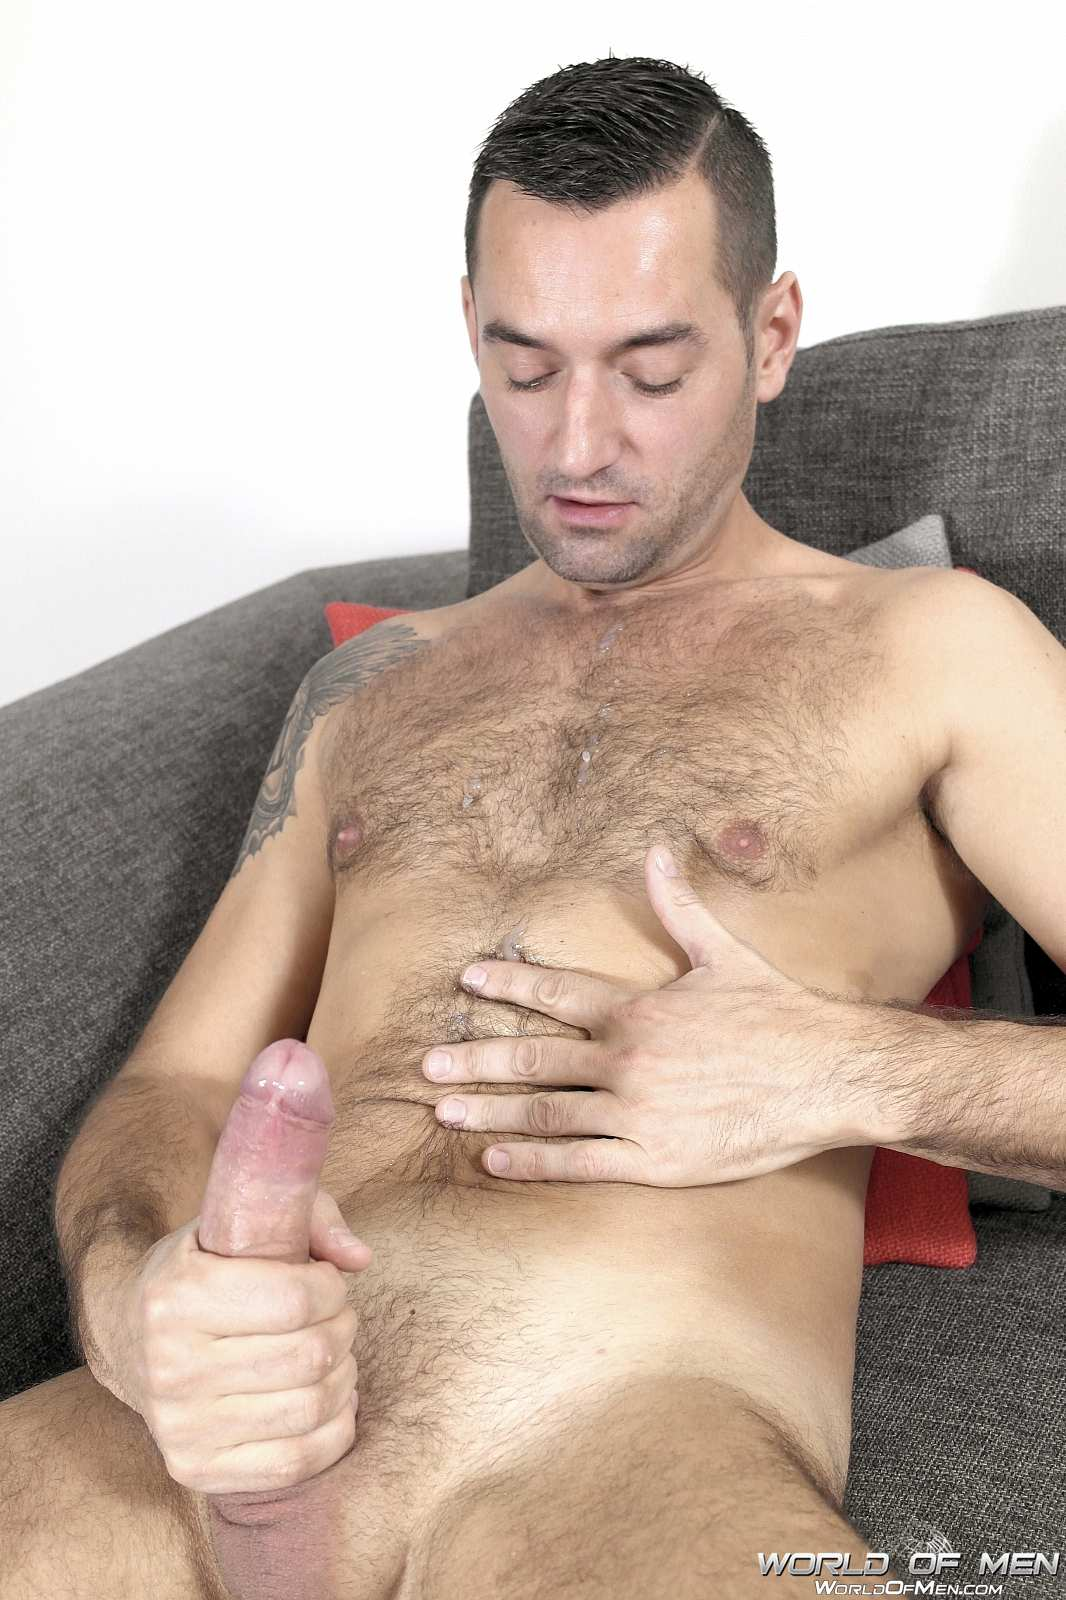 World Of Men Chris ADam Big Uncut Cock Jerk Off Masturbation Amateur Gay Porn 07 Hairy Sexy Stud Fingers His Ass And Plays With His Huge Uncut Cock